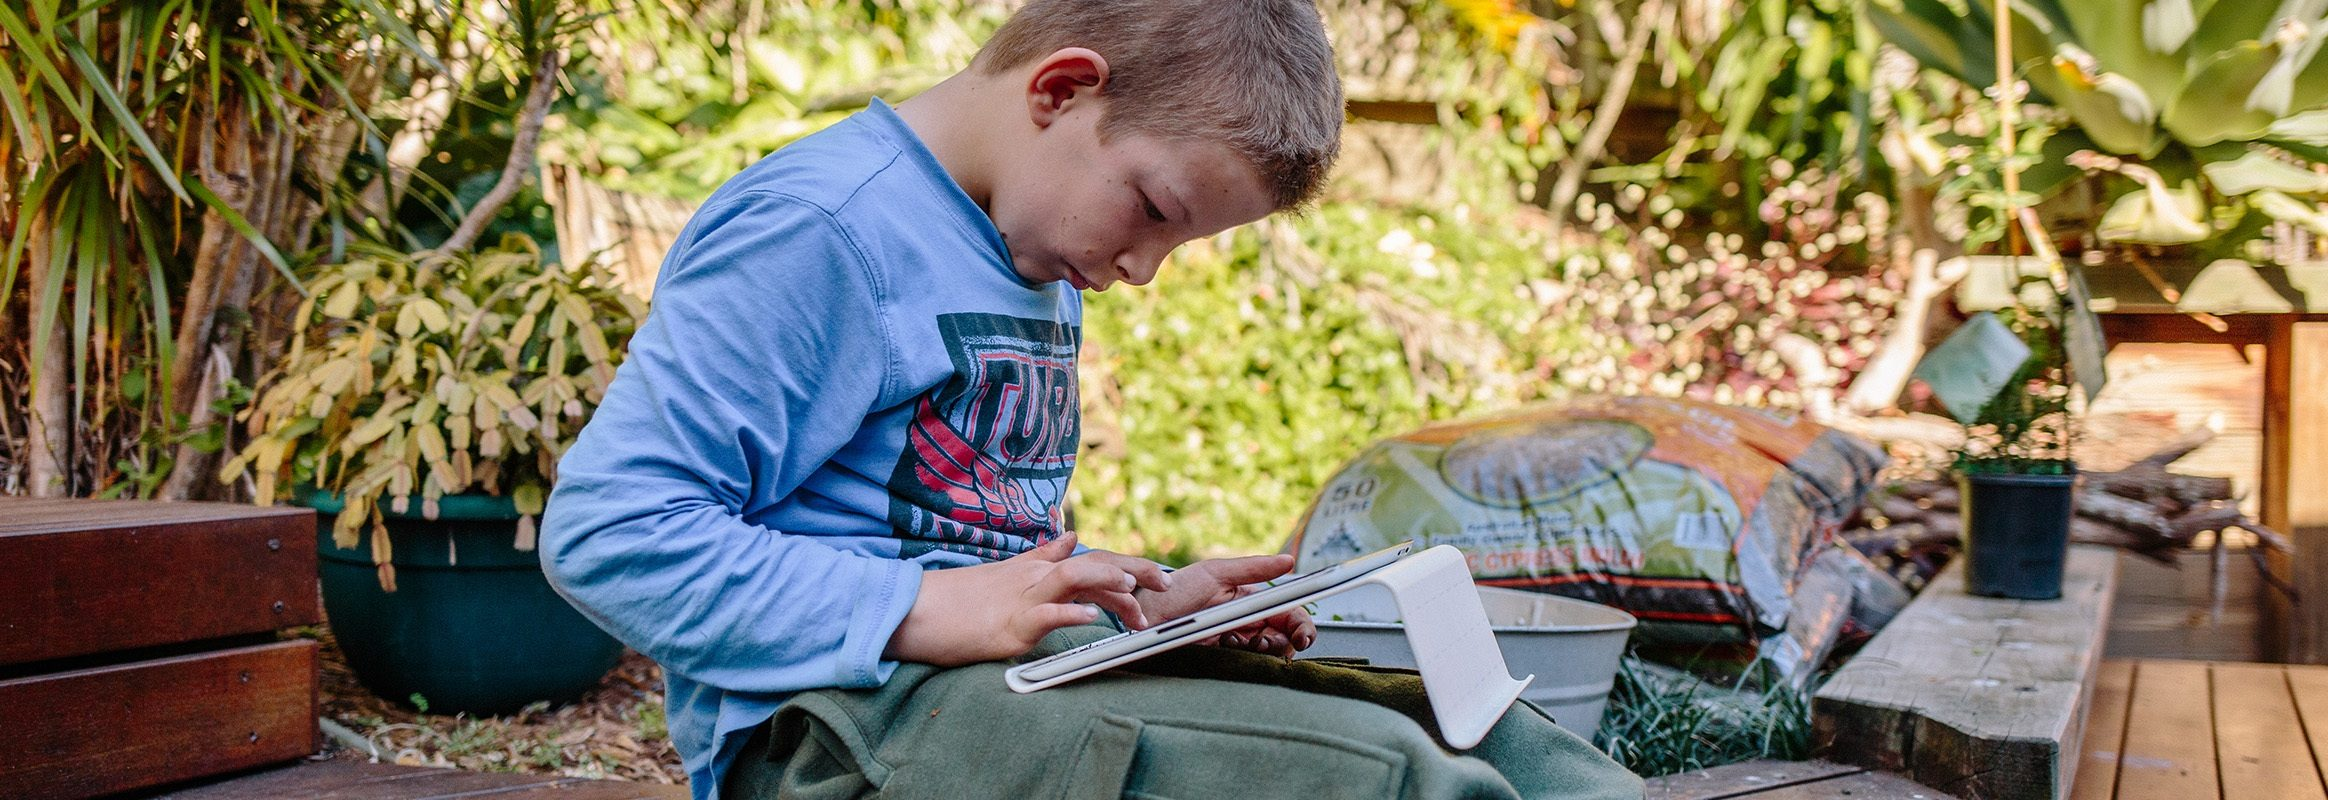 Boy in garden with iPad